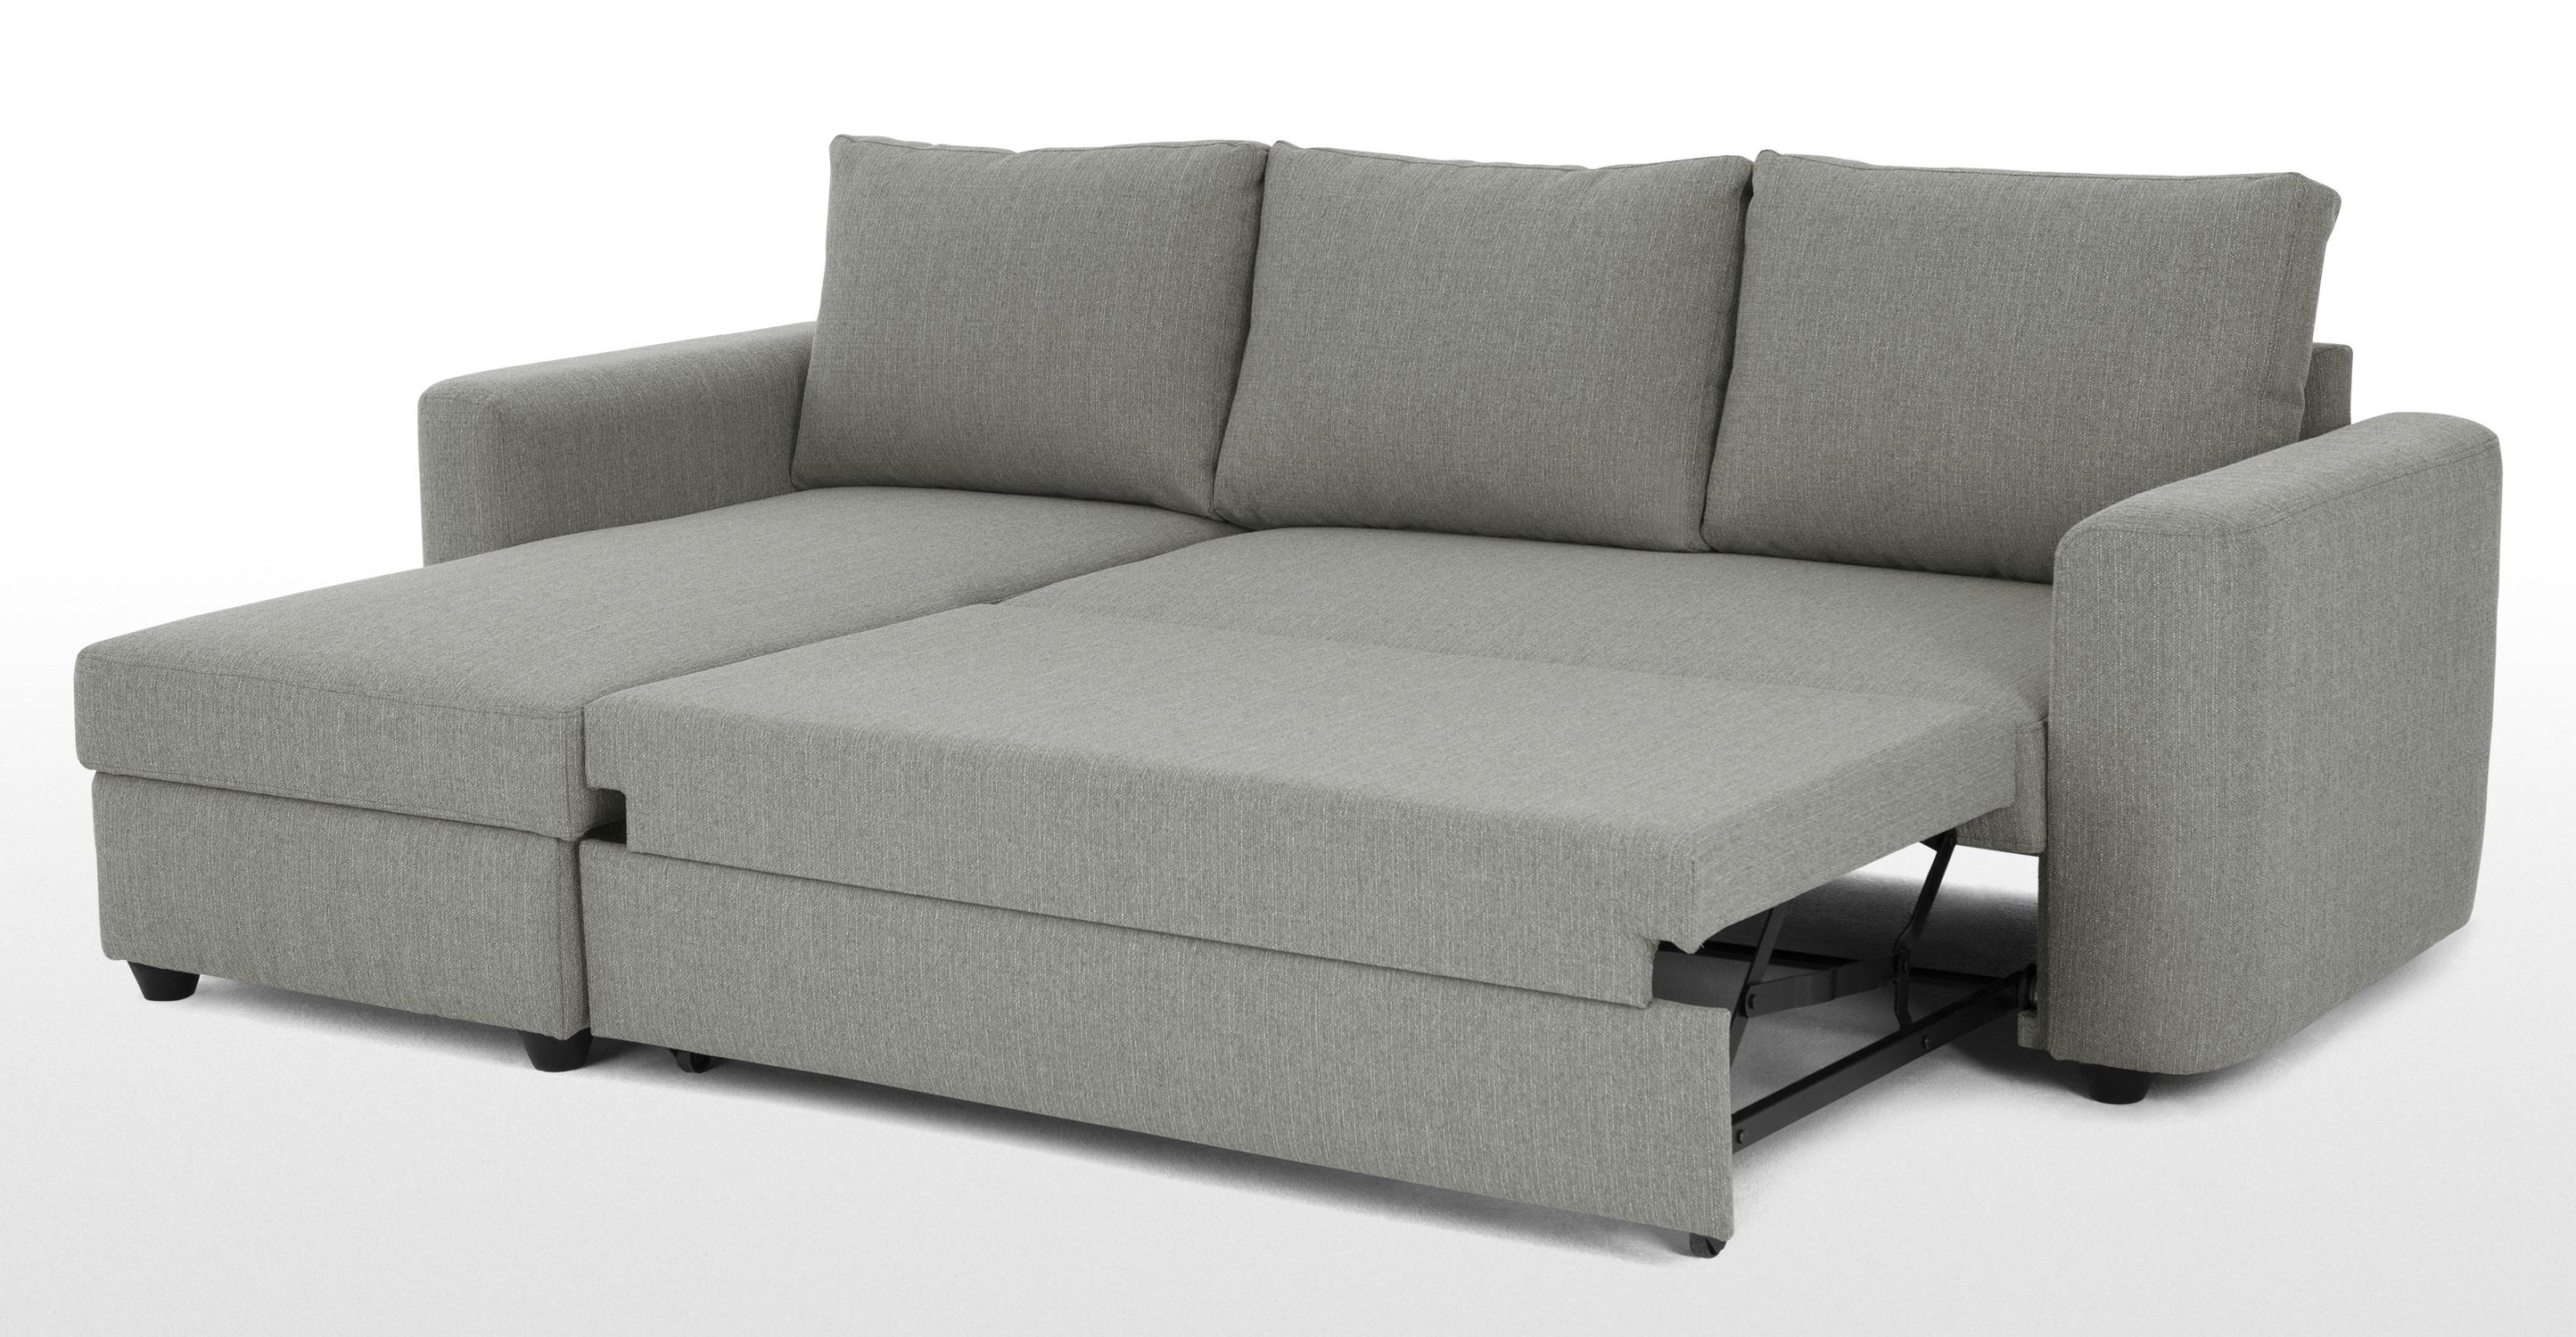 2 Seater Corner Sofa Bed Uk | Centerfieldbar Inside Storage Sofa Beds (View 13 of 20)